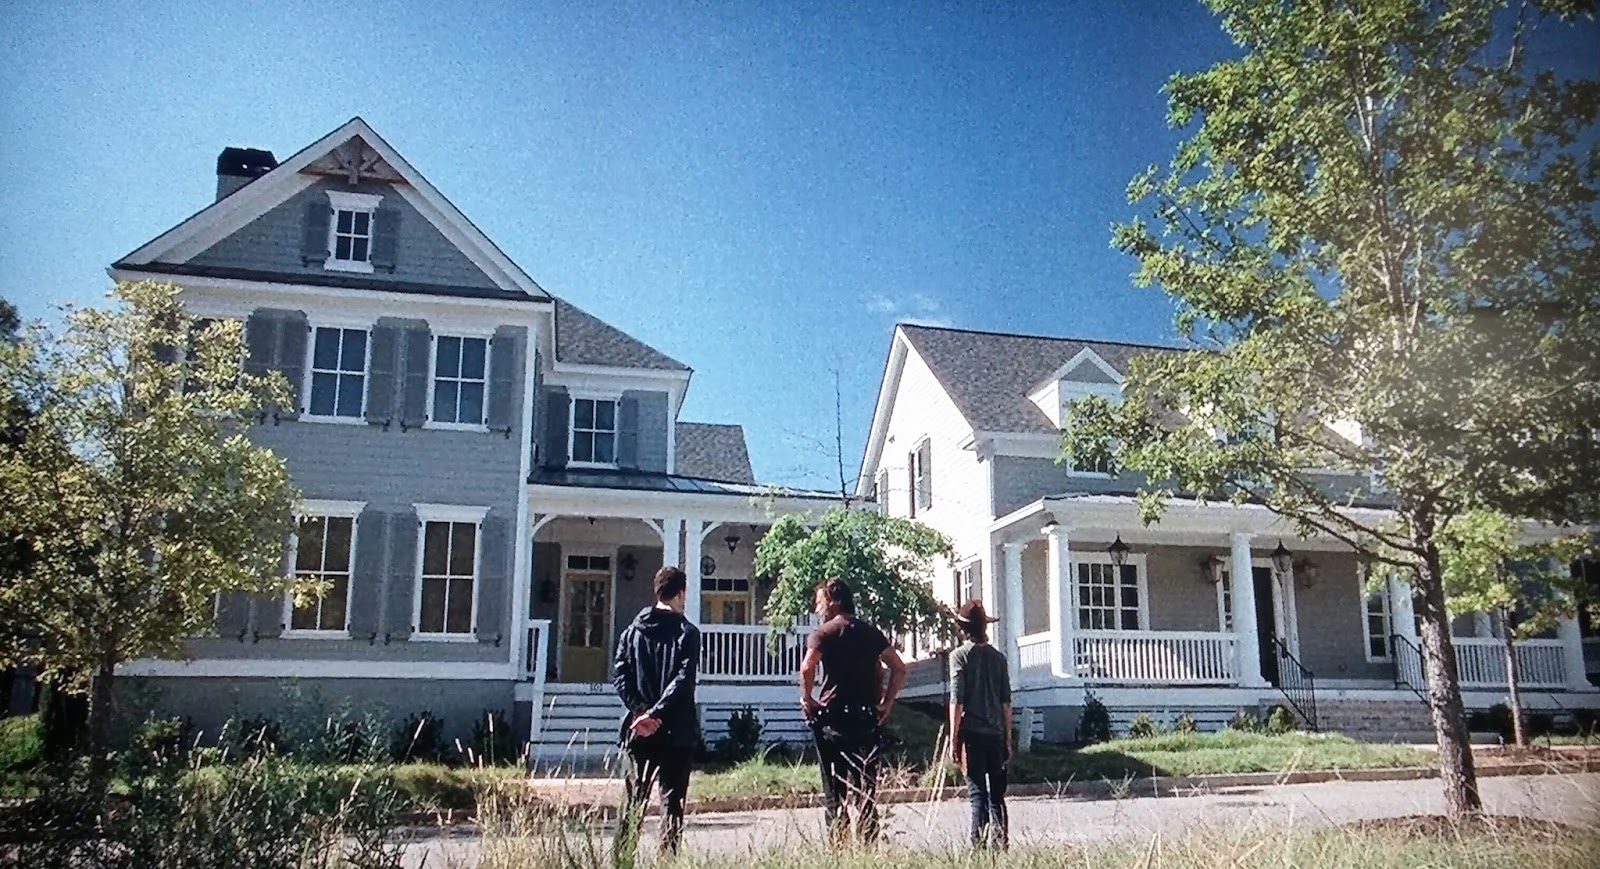 Rehab addict 1904 mansion -  The Walking Dead Is Currently One Of Television S Biggest Shows On A Business Trip This Week I Was Able To Find The Town Used As The Fictional